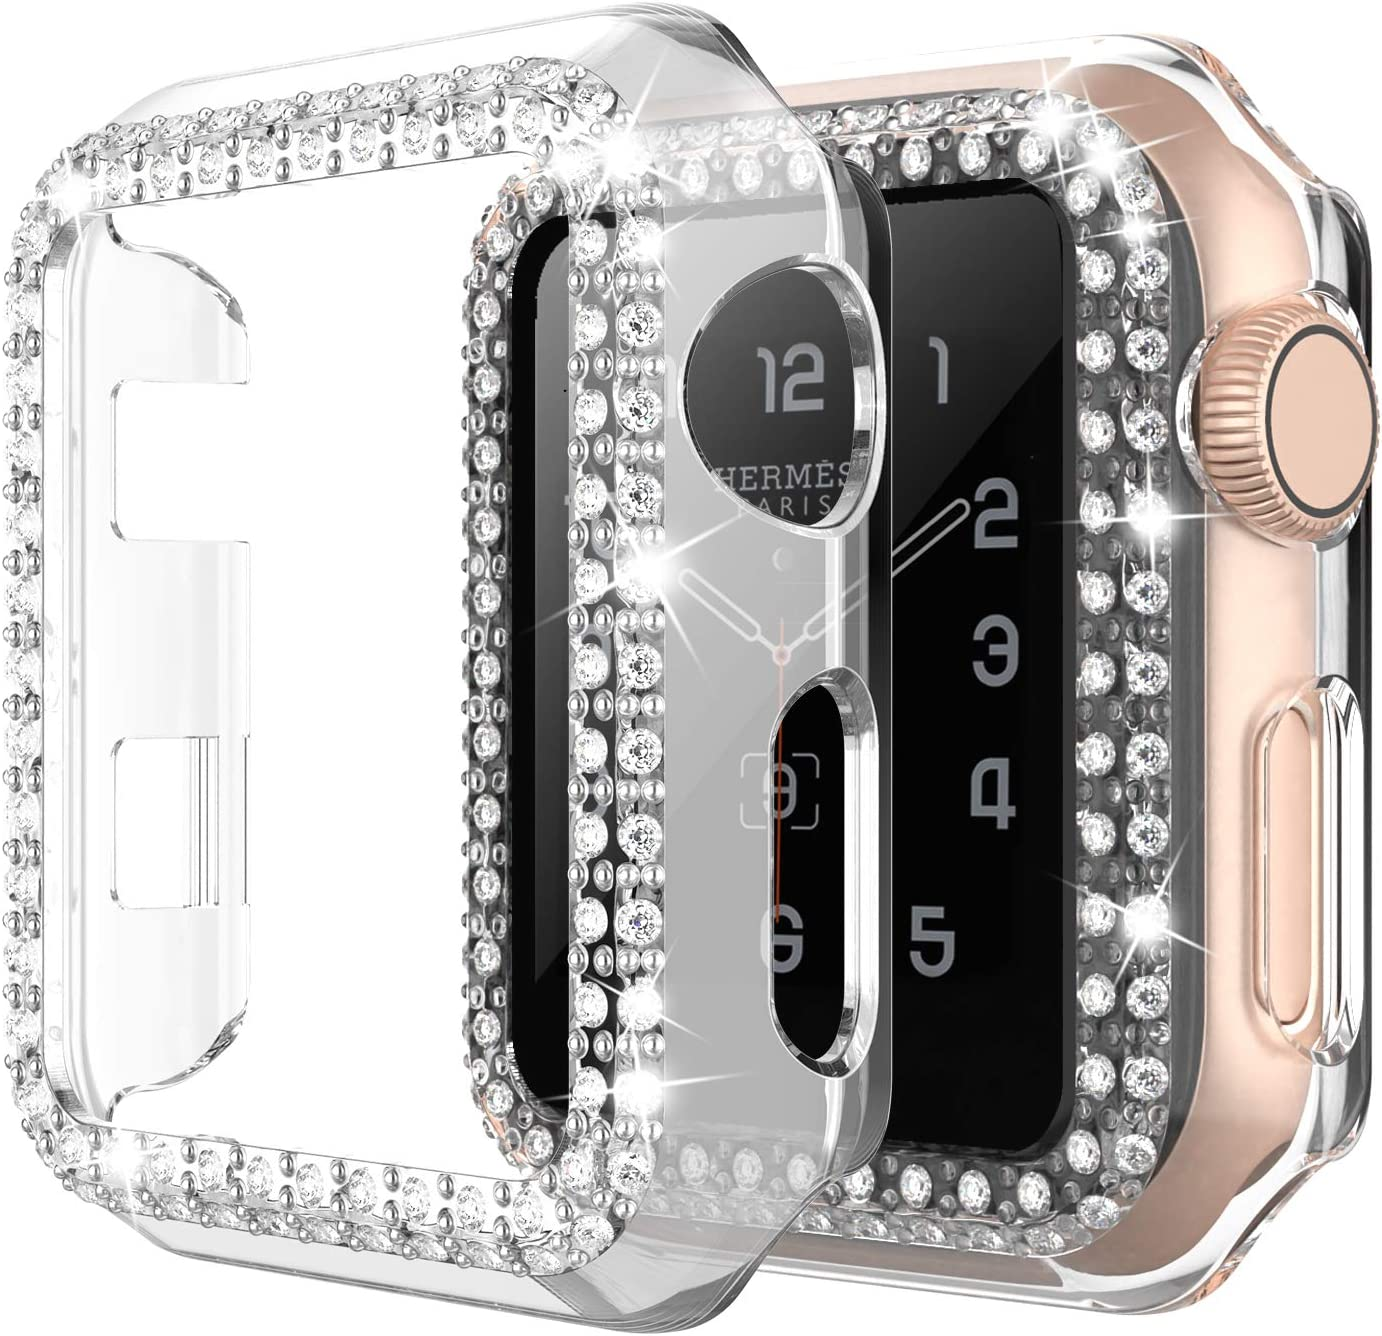 adepoy Apple Watch Case 40mm Series 6/5/4 SE Bling Rhinestone Apple Watch Protective Case Bumper Frame Screen Protector Case Cover for Women Girl iWatch Series 40mm Clear